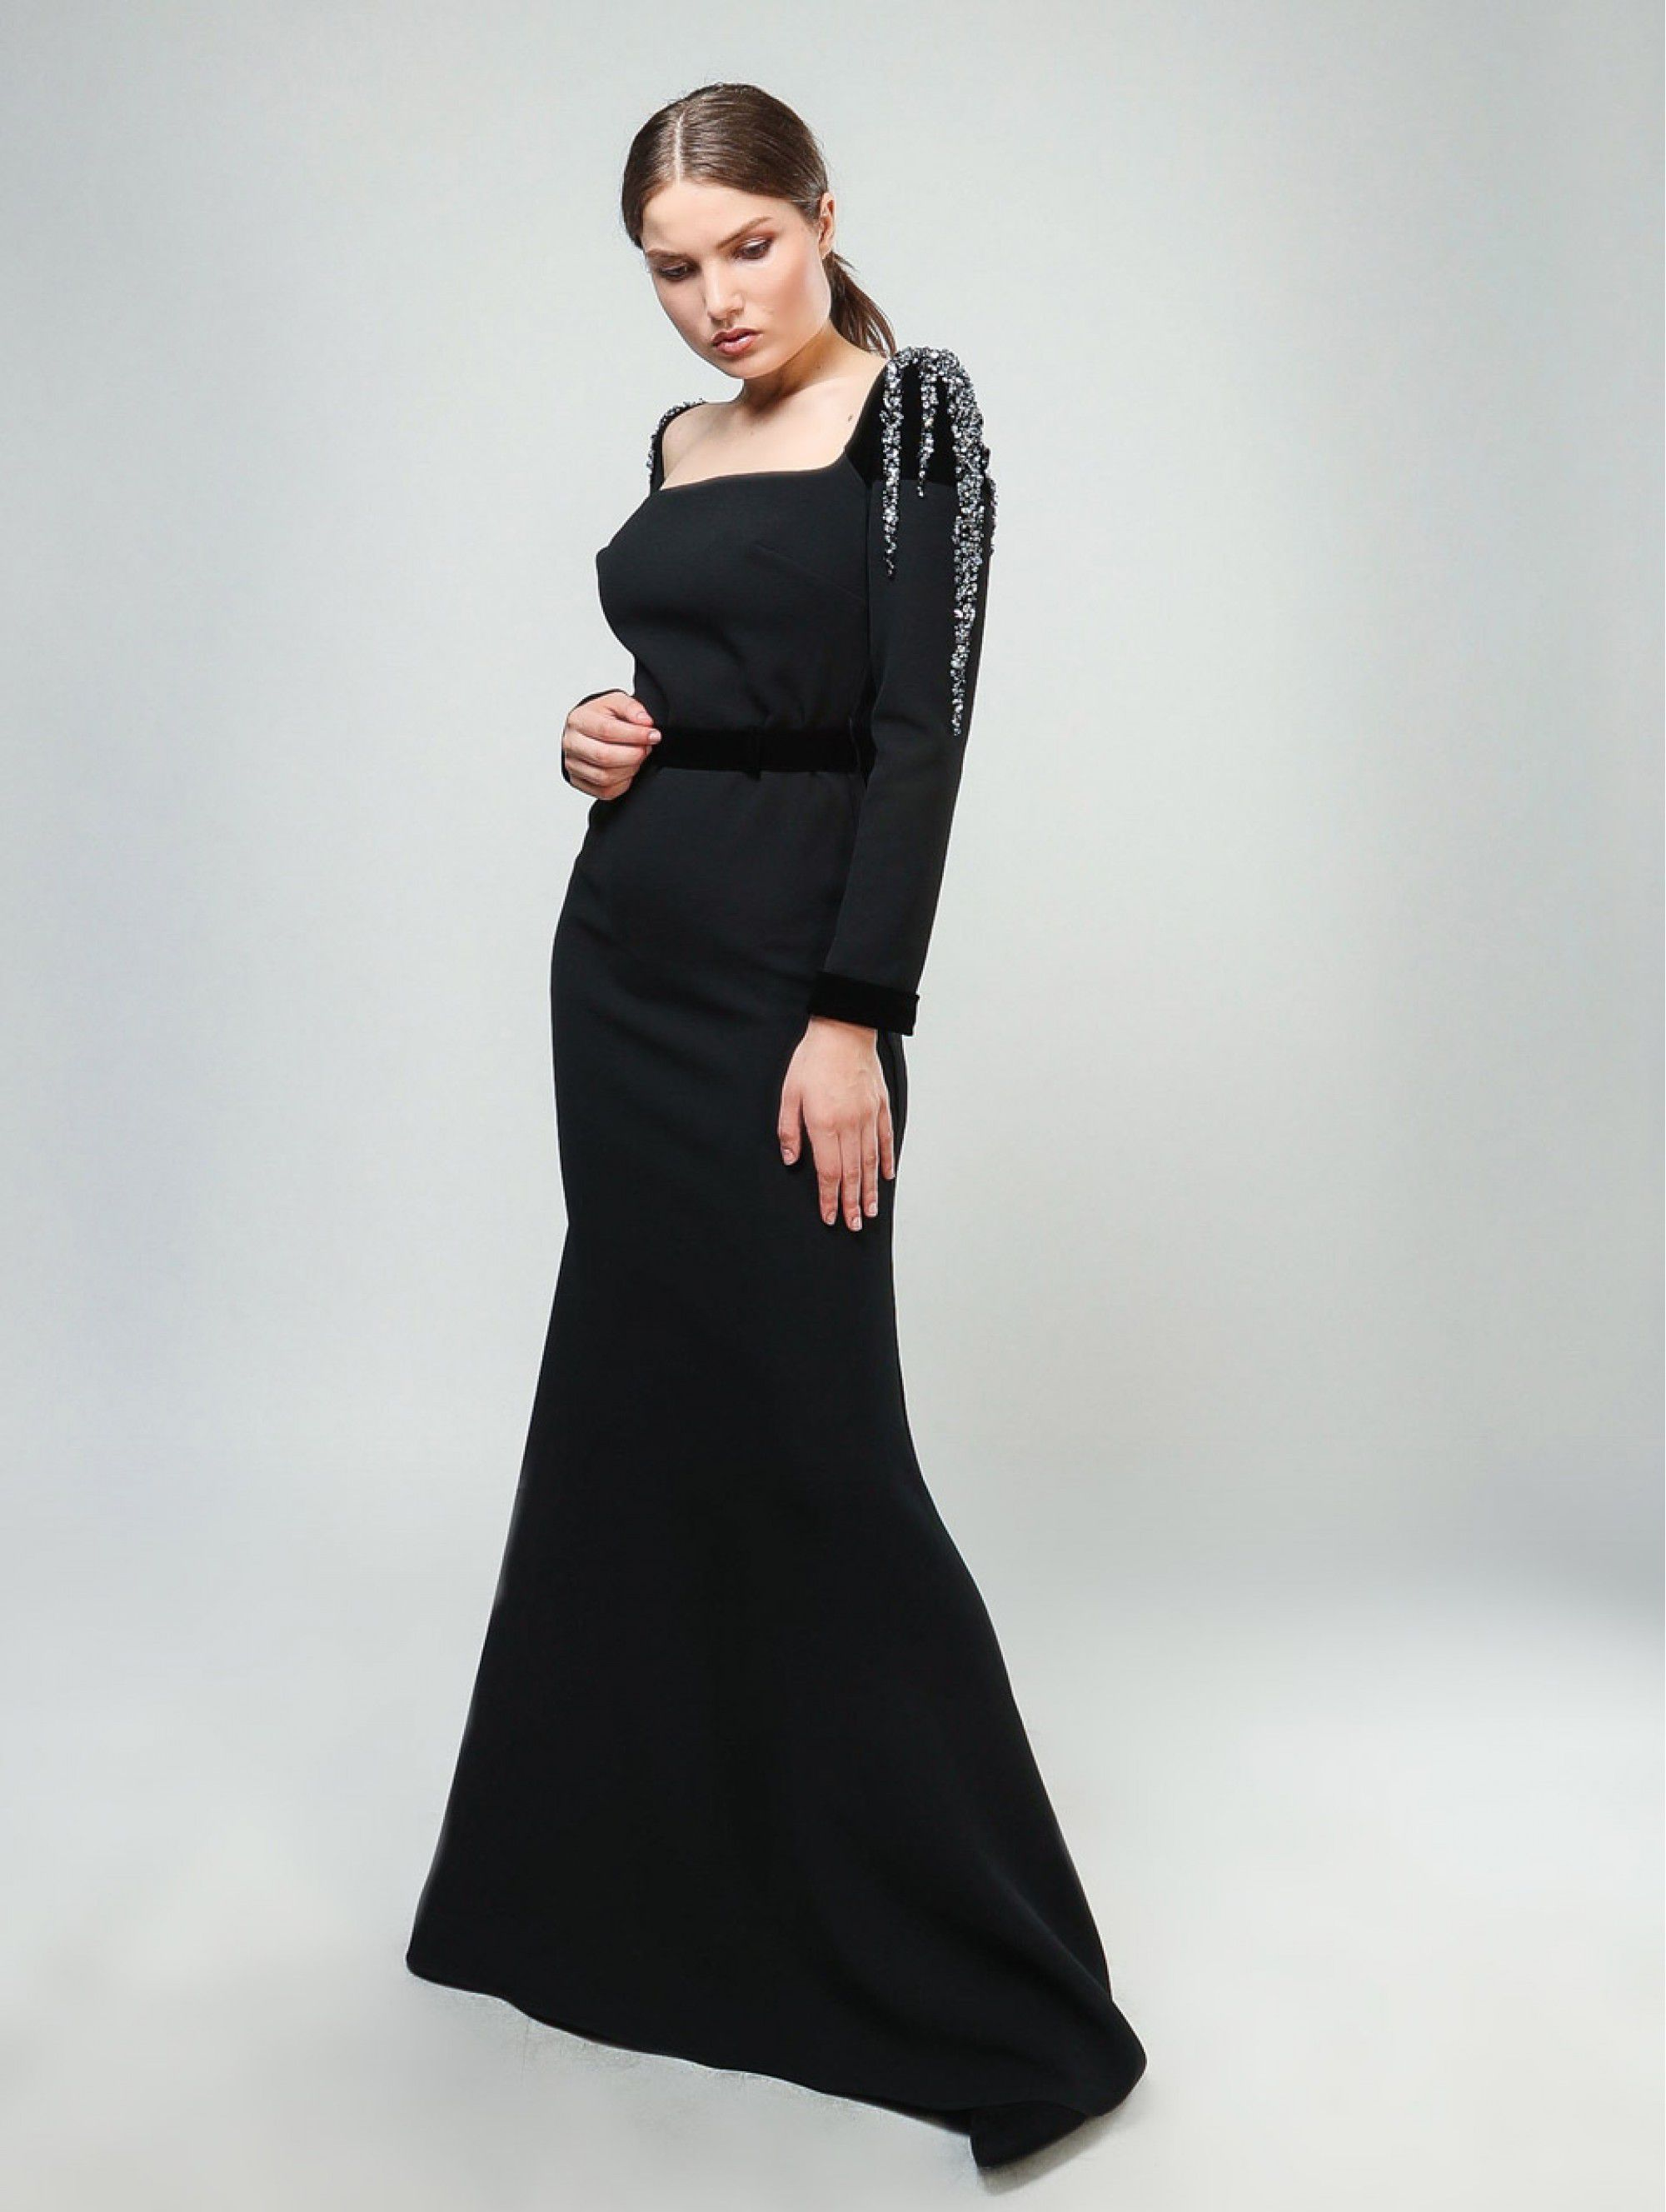 Maleone Black Dress with Stones and Strap